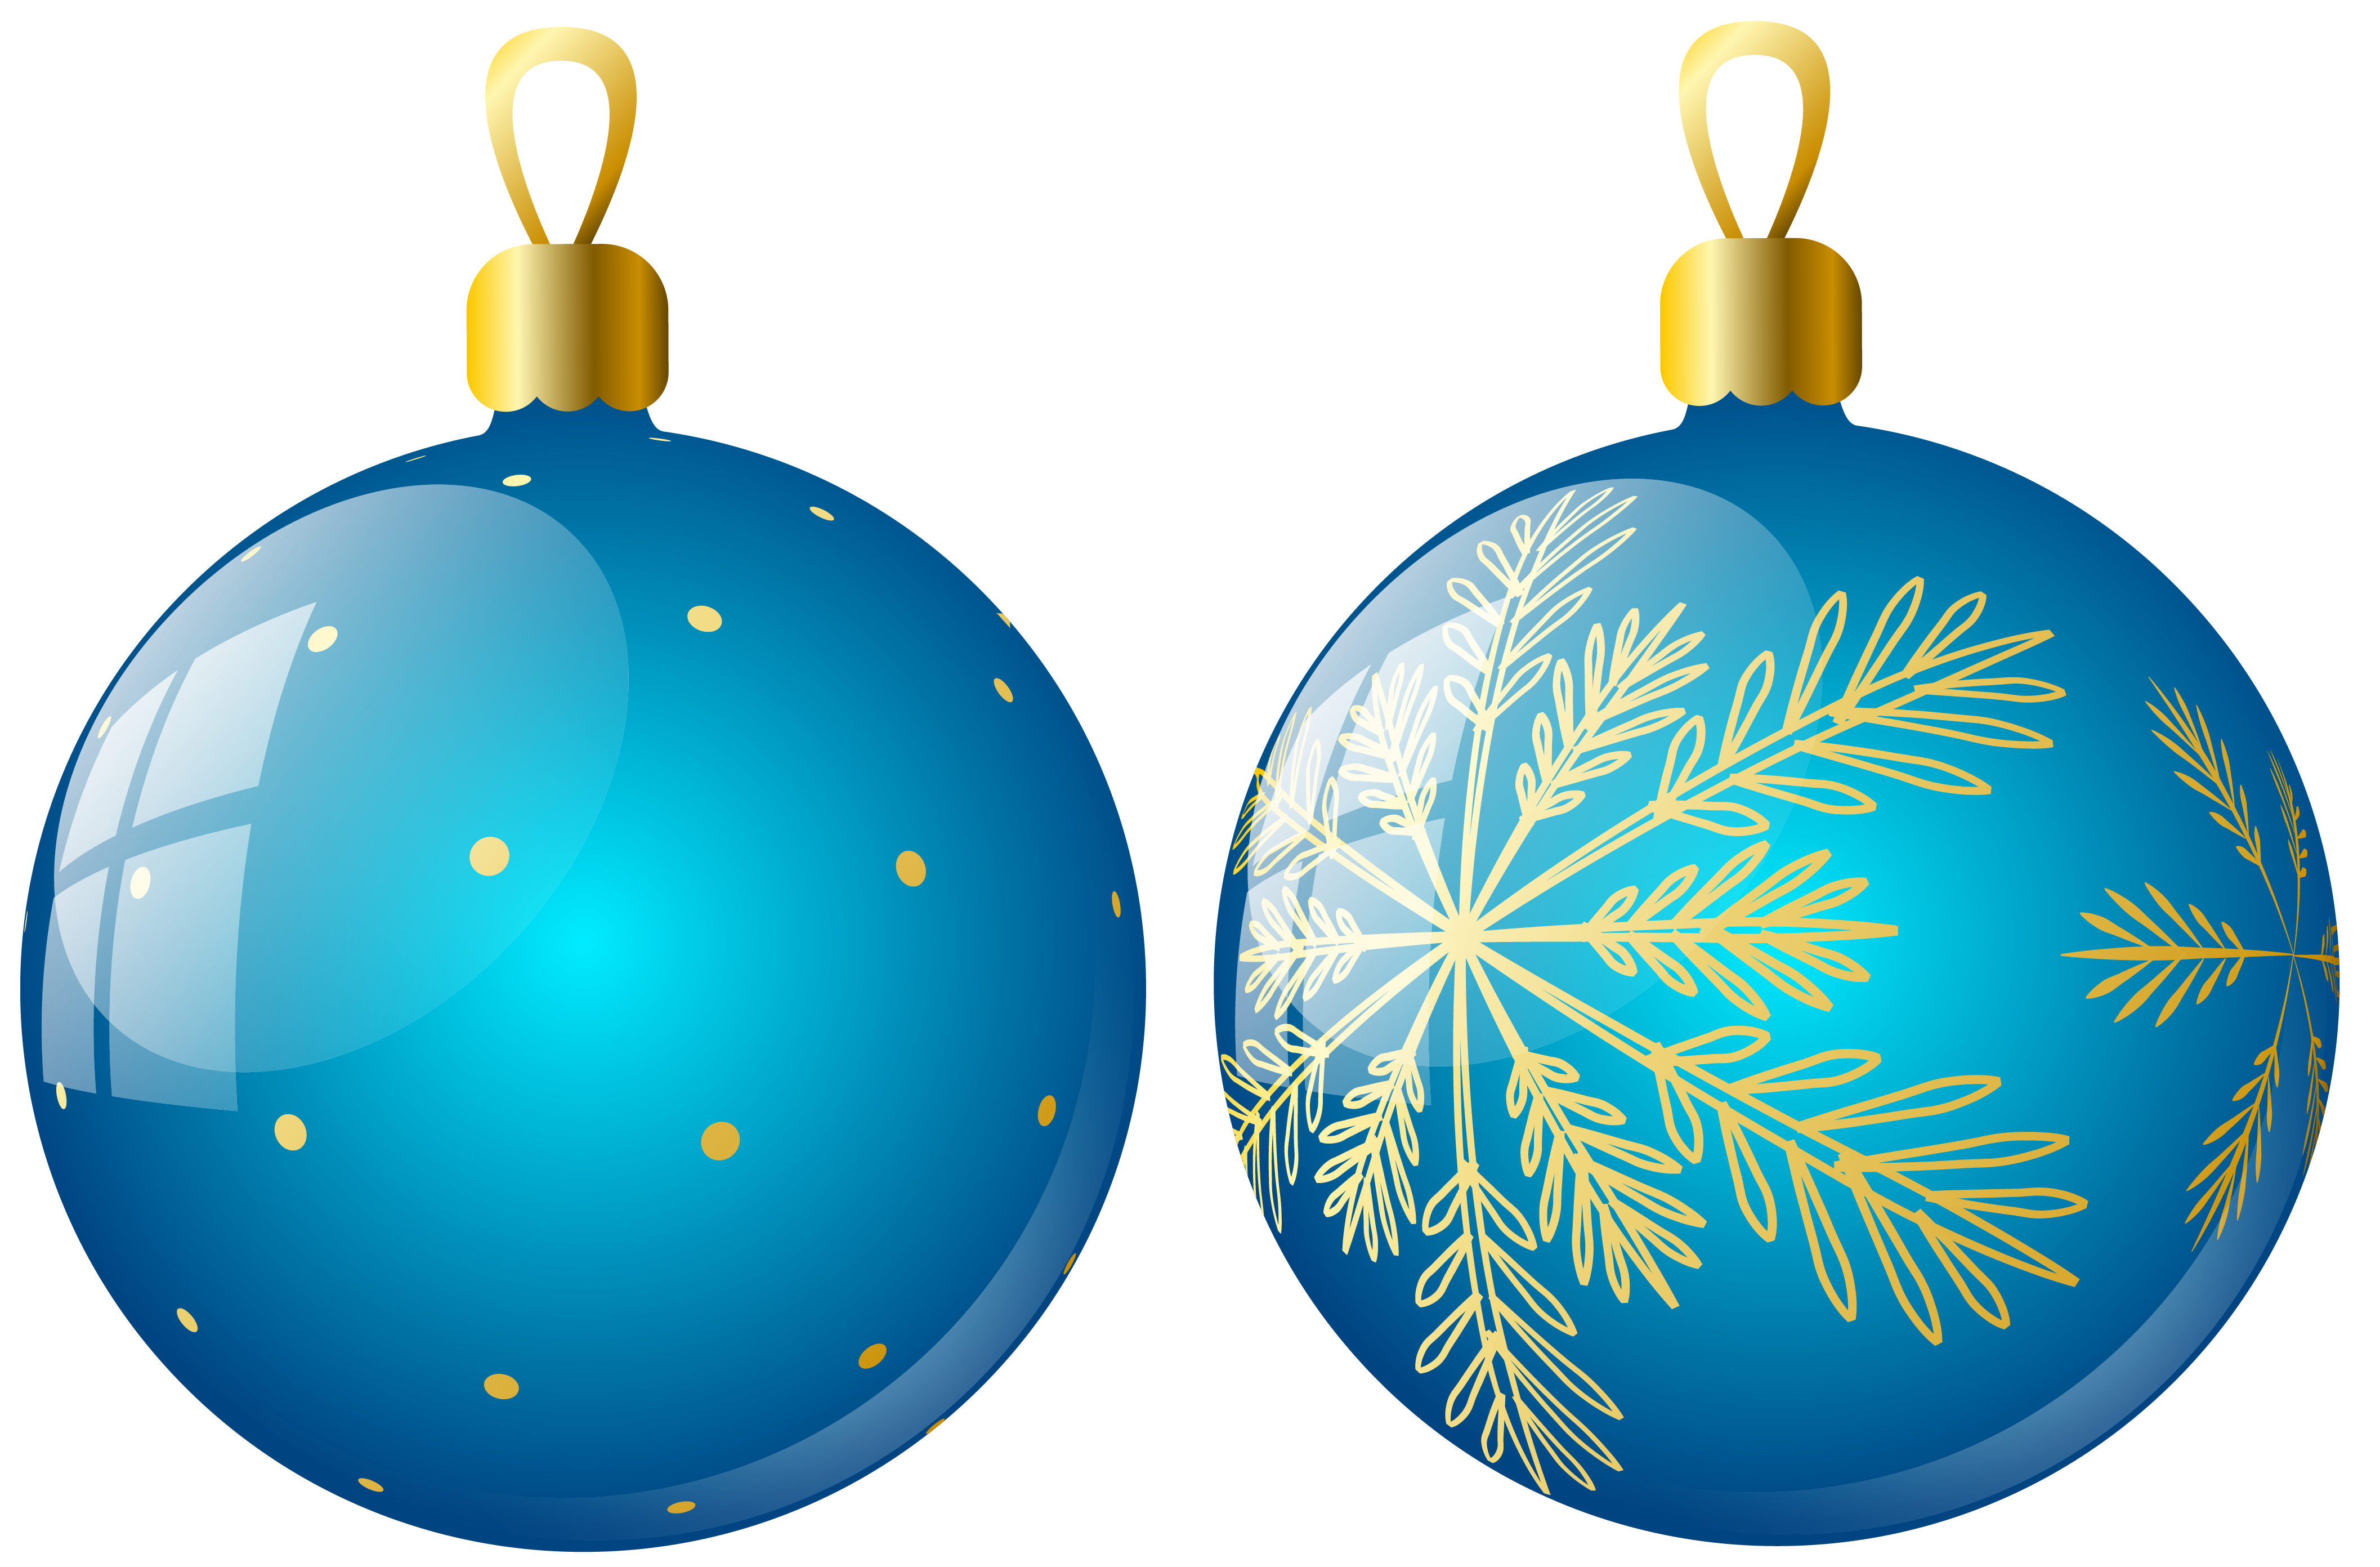 Holydays clipart blue Balls Two Ornaments Clipart